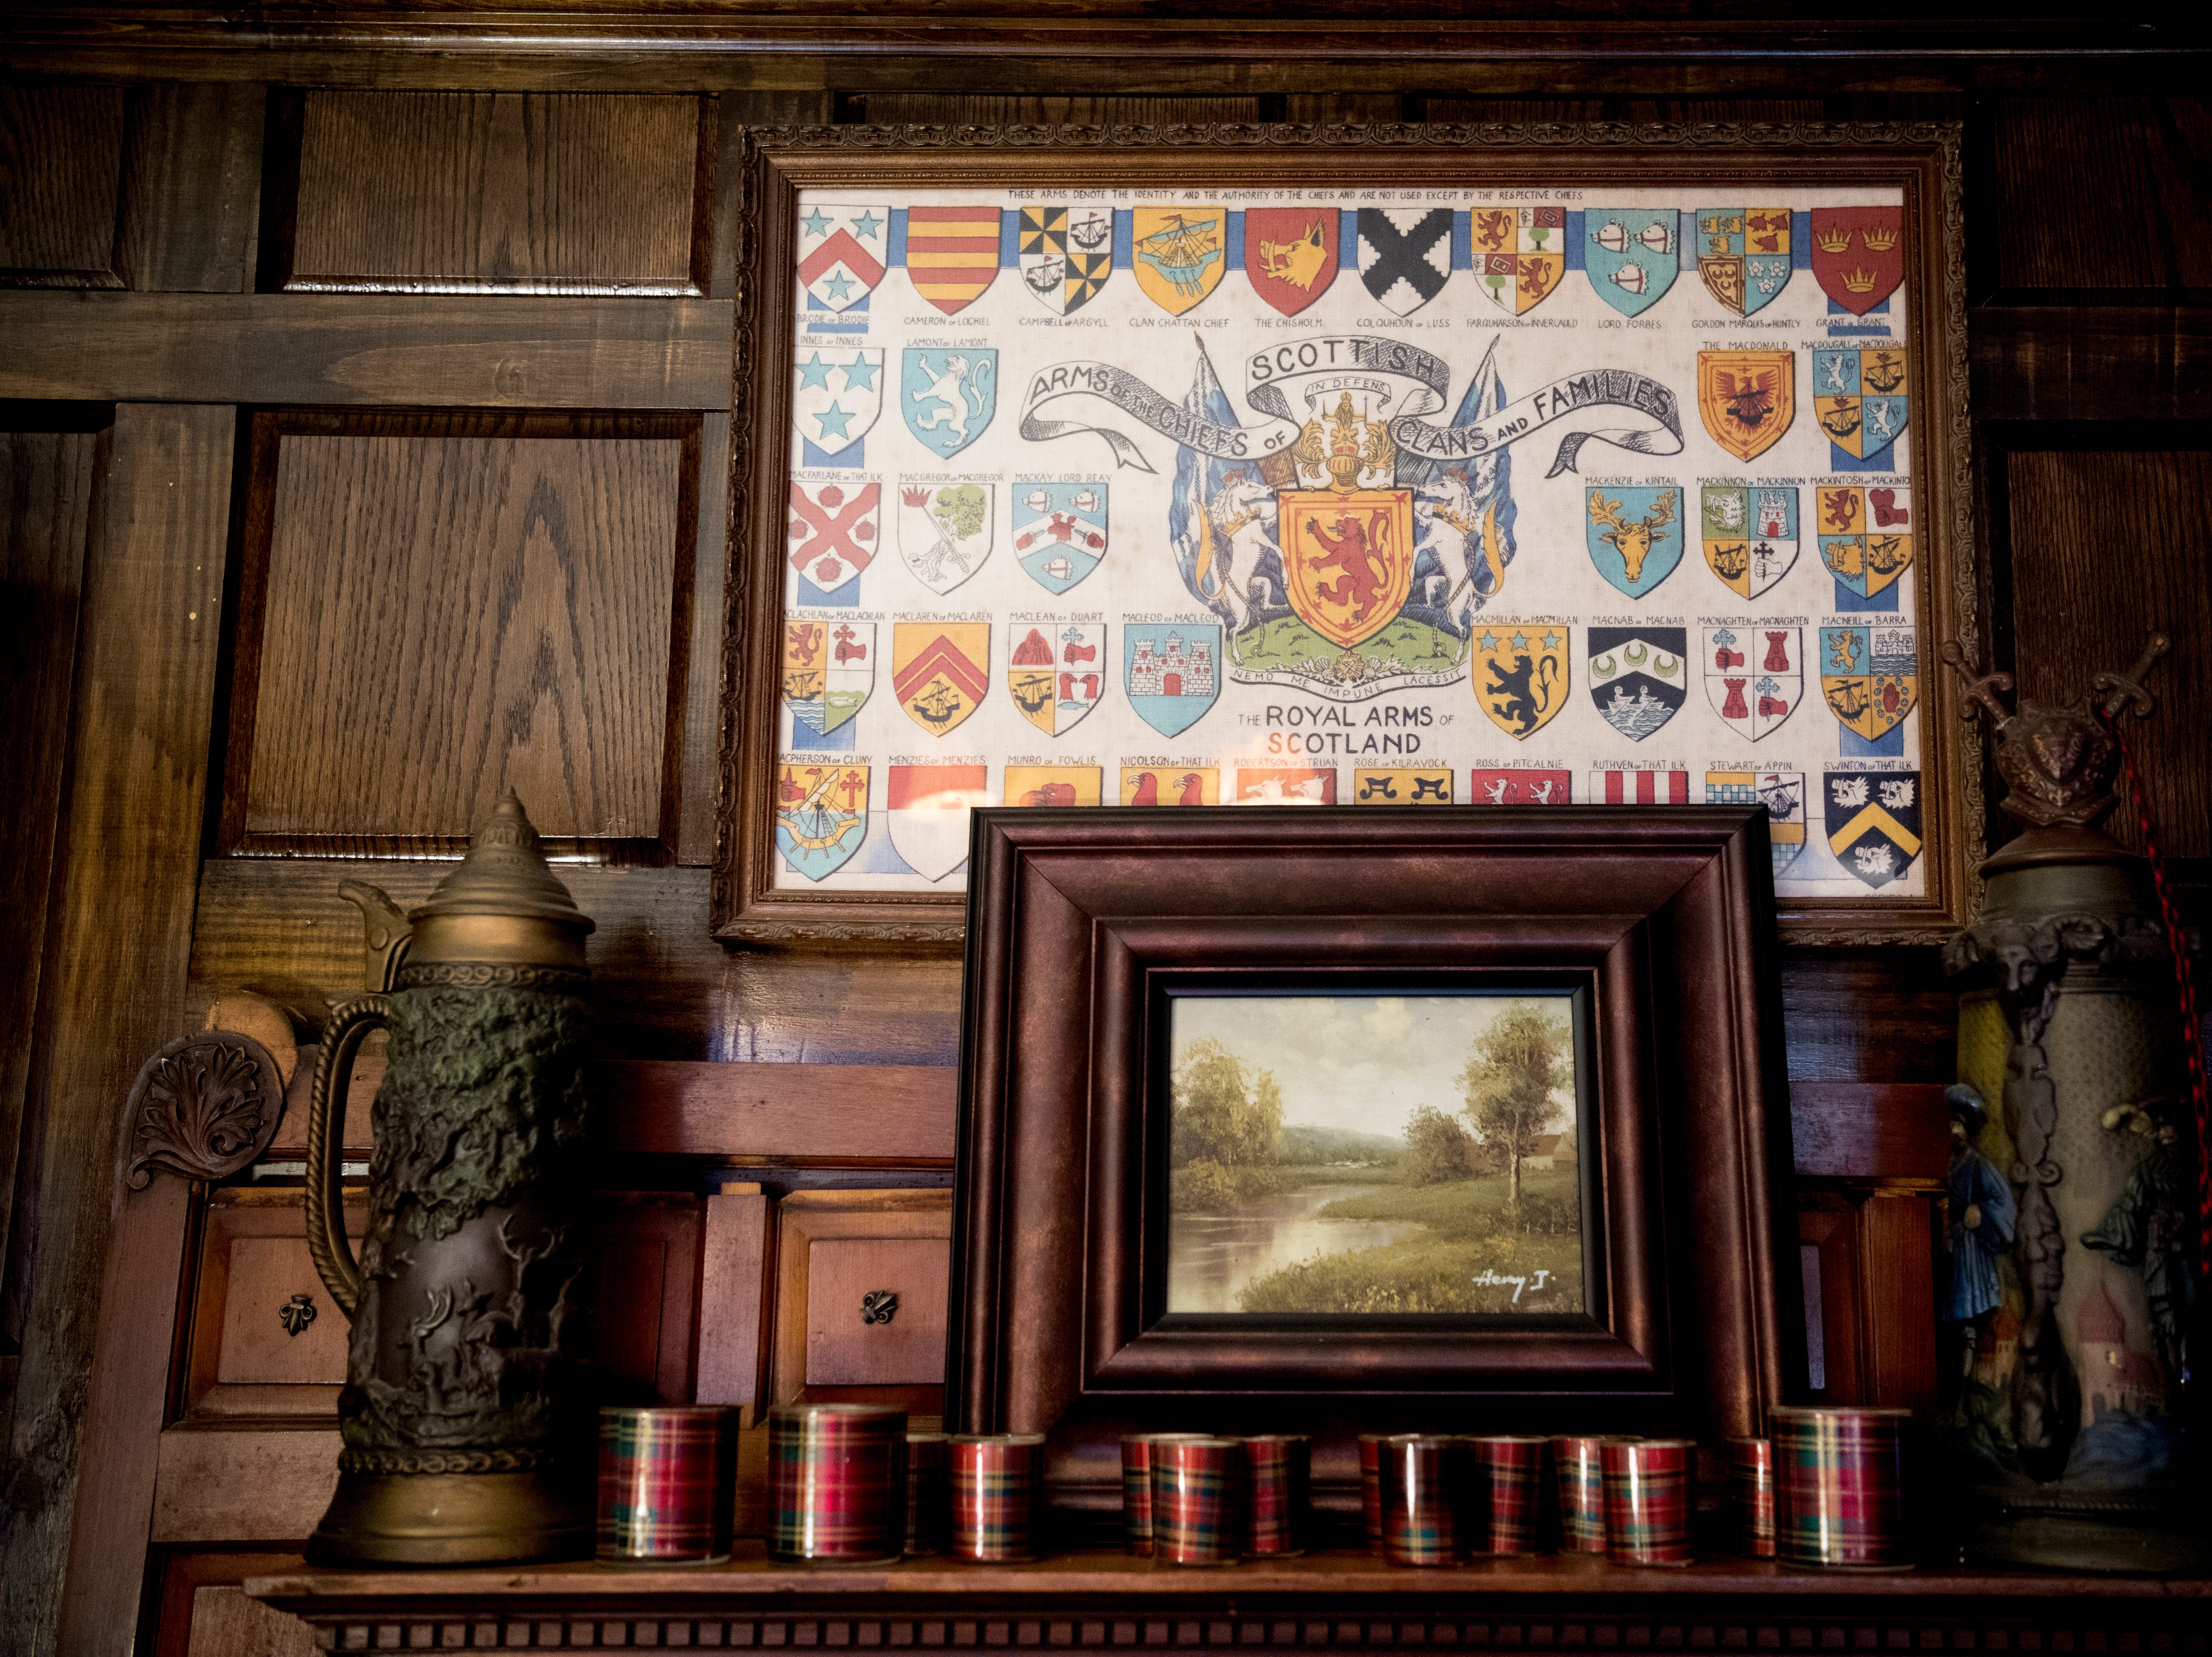 A poster of Scottish coats of arms sits on a mantel inside Williamswood Castle in South Knoxville, Tennessee on Thursday, January 17, 2019. The home, modeled after a medieval castle, was built by Julia Tucker in 1991 and took 6 years to complete. Many of the items in the home were sourced from around the Knoxville area.